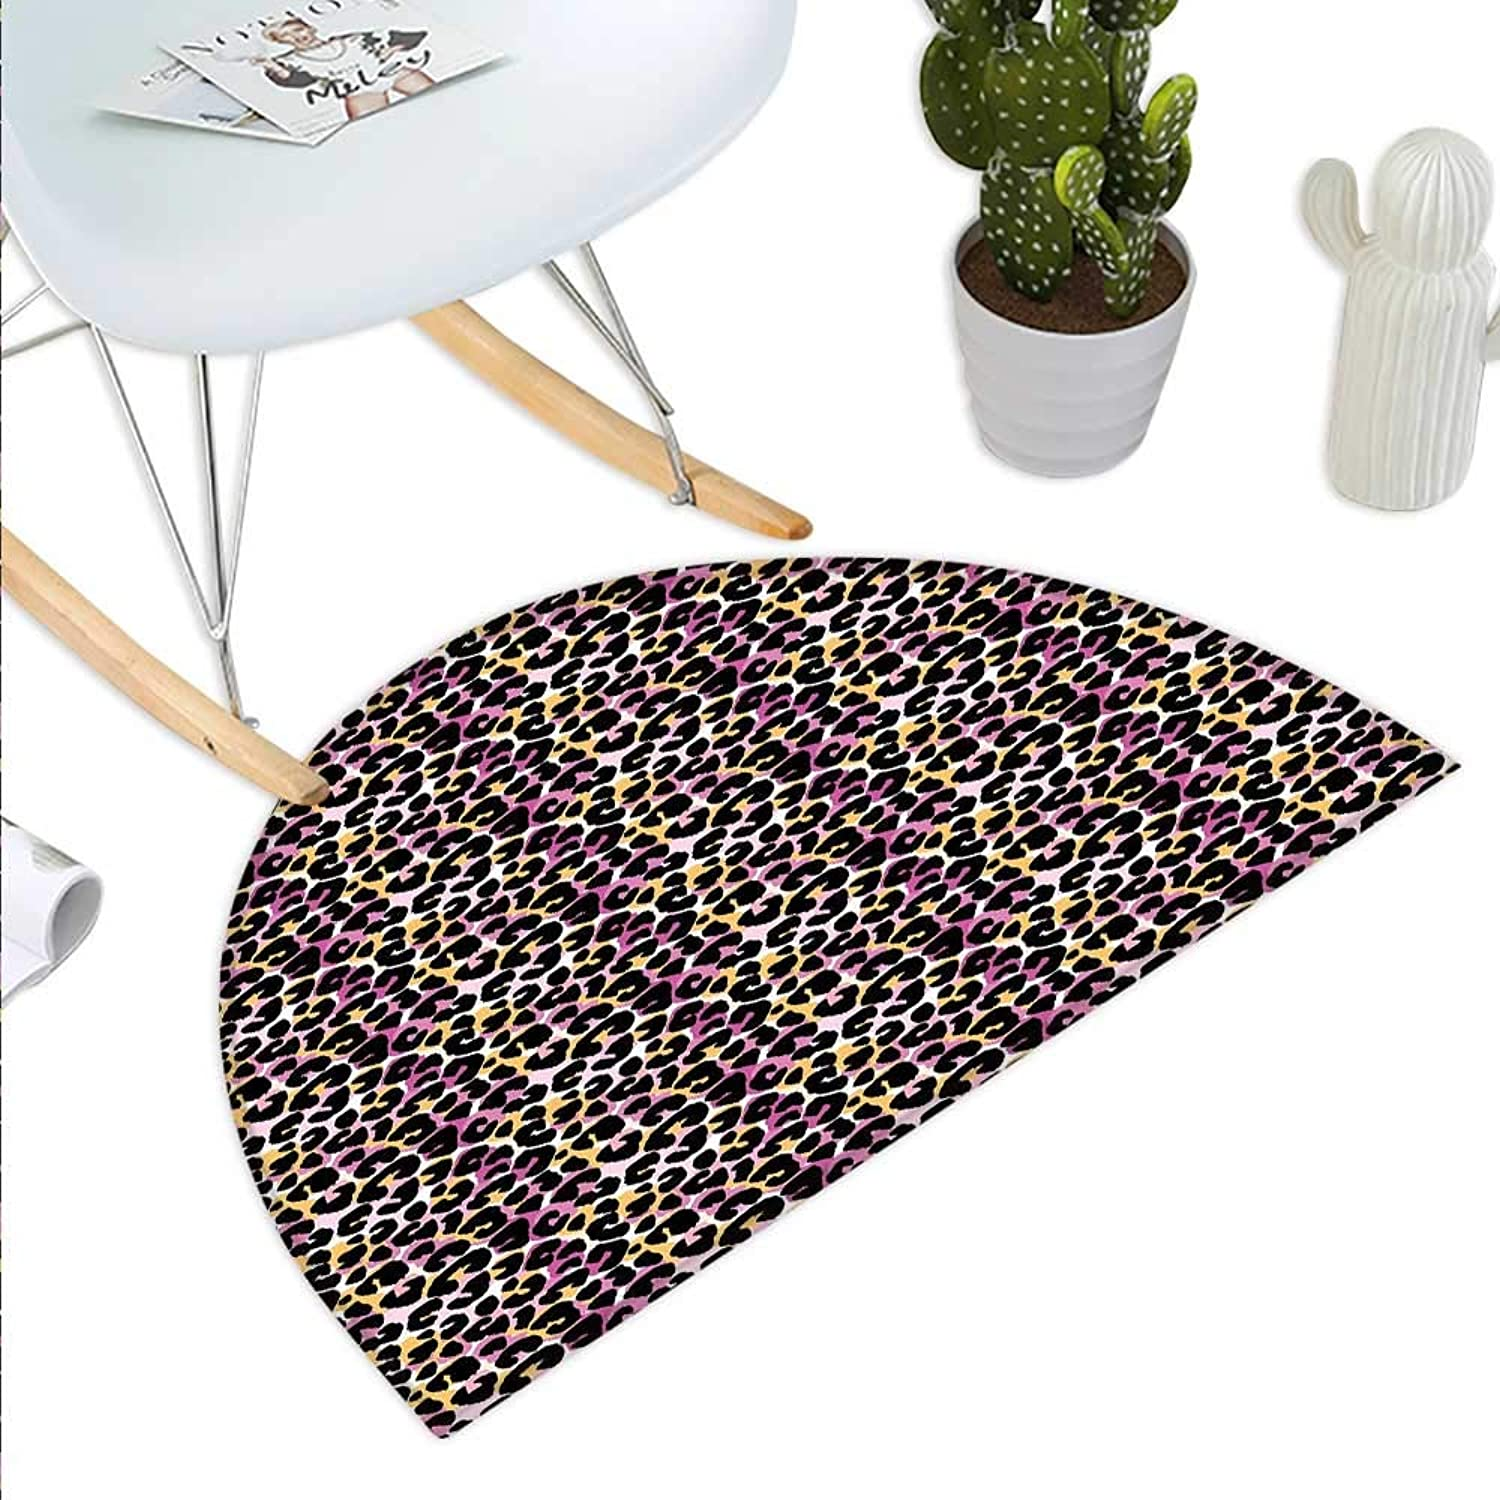 Leopard Print Semicircle Doormat Abstract Wild Exotic Animal Skin Pattern in Artistic Style with Vibrant color Halfmoon doormats H 43.3  xD 64.9  Multicolor